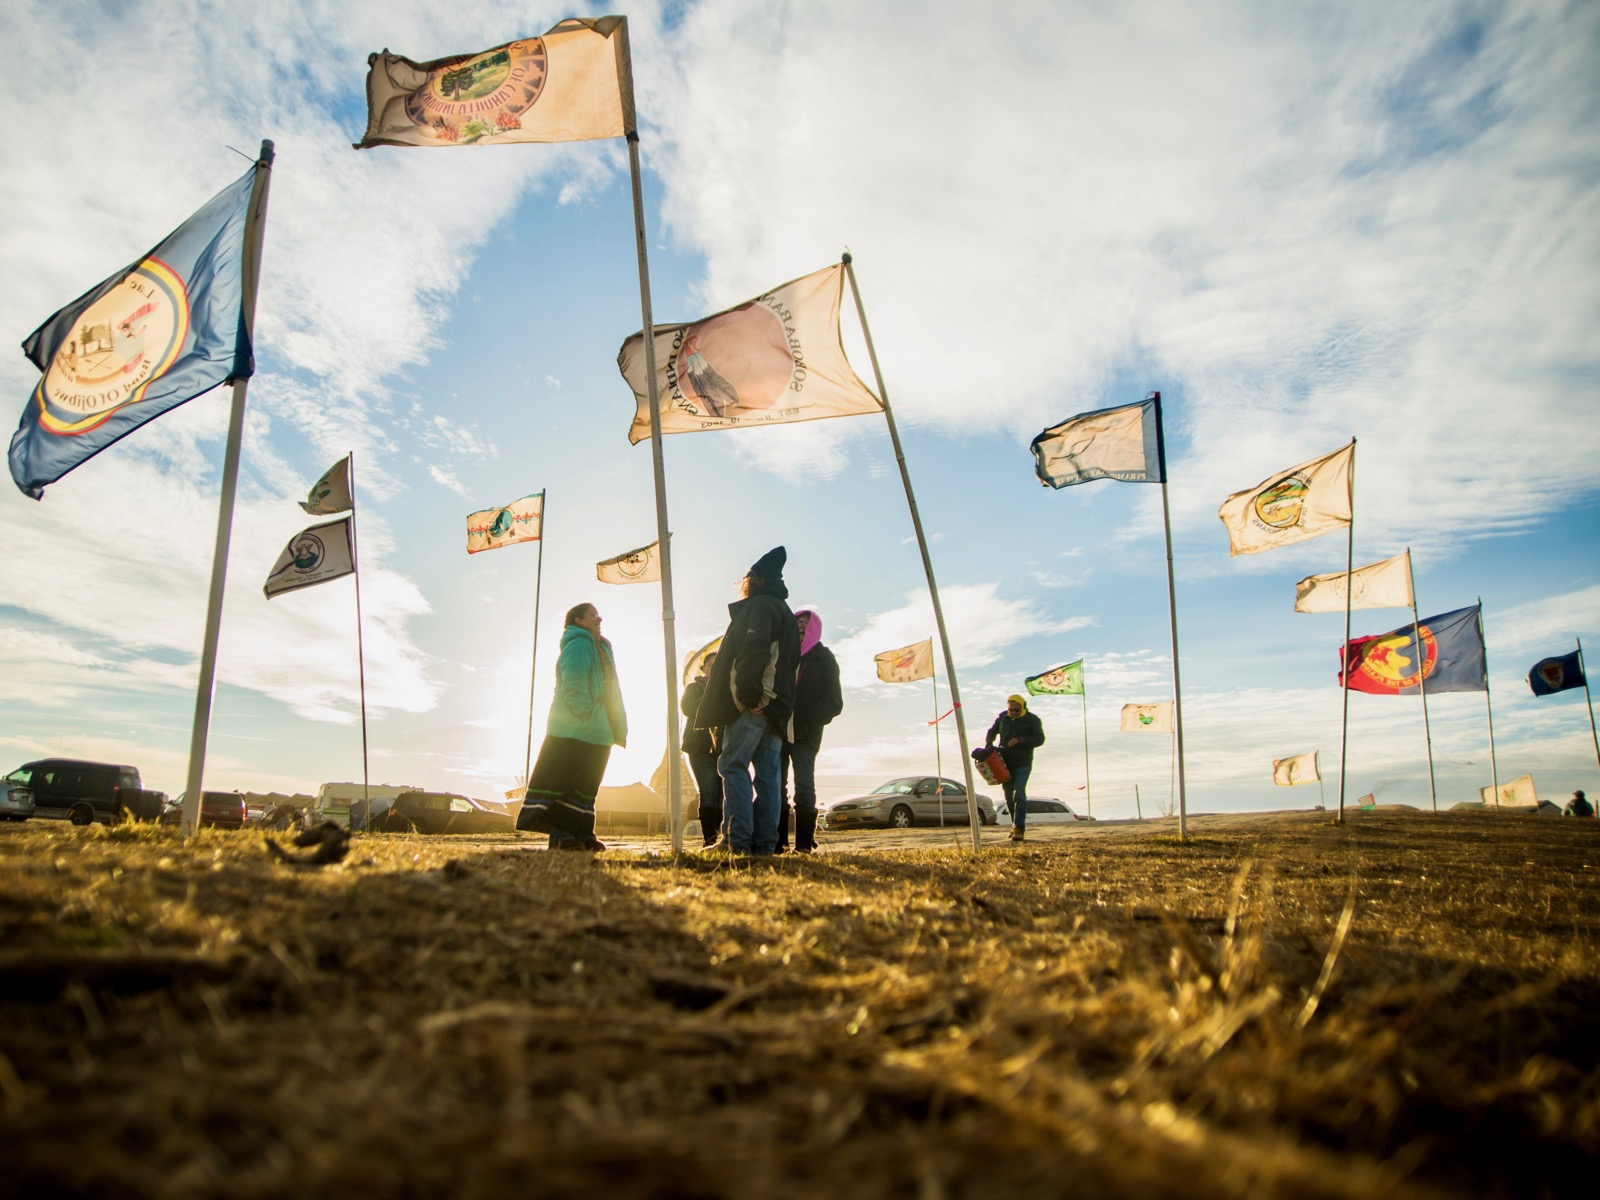 Energy News Network: Tribes come together for Oceti Sakowin Power Project